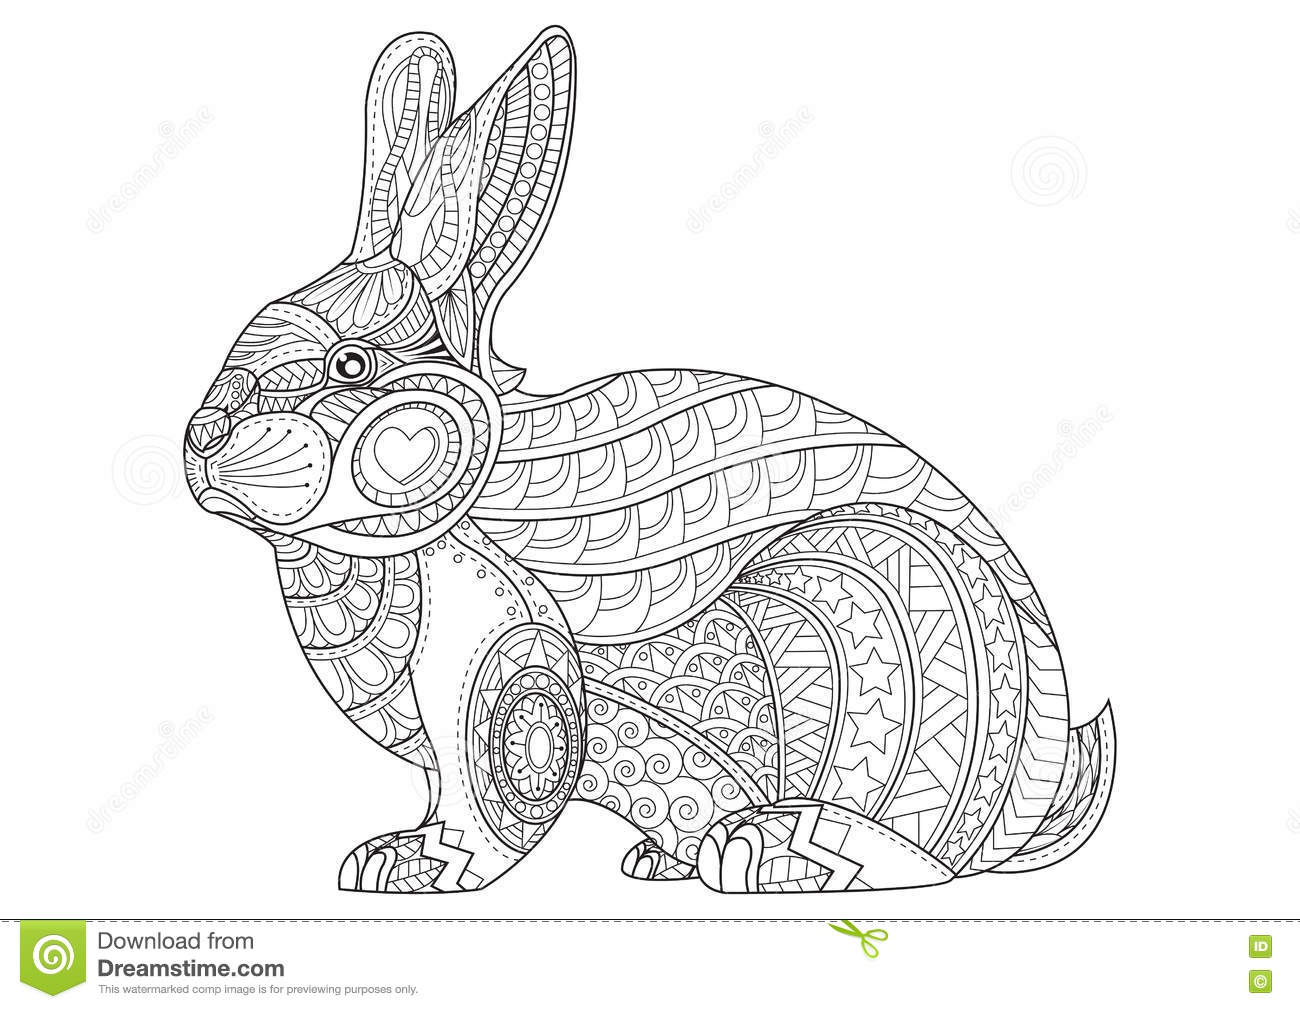 Coloring Page Rabbit. Hand Drawn Vintage Doodle Bunny Vector Stock ...